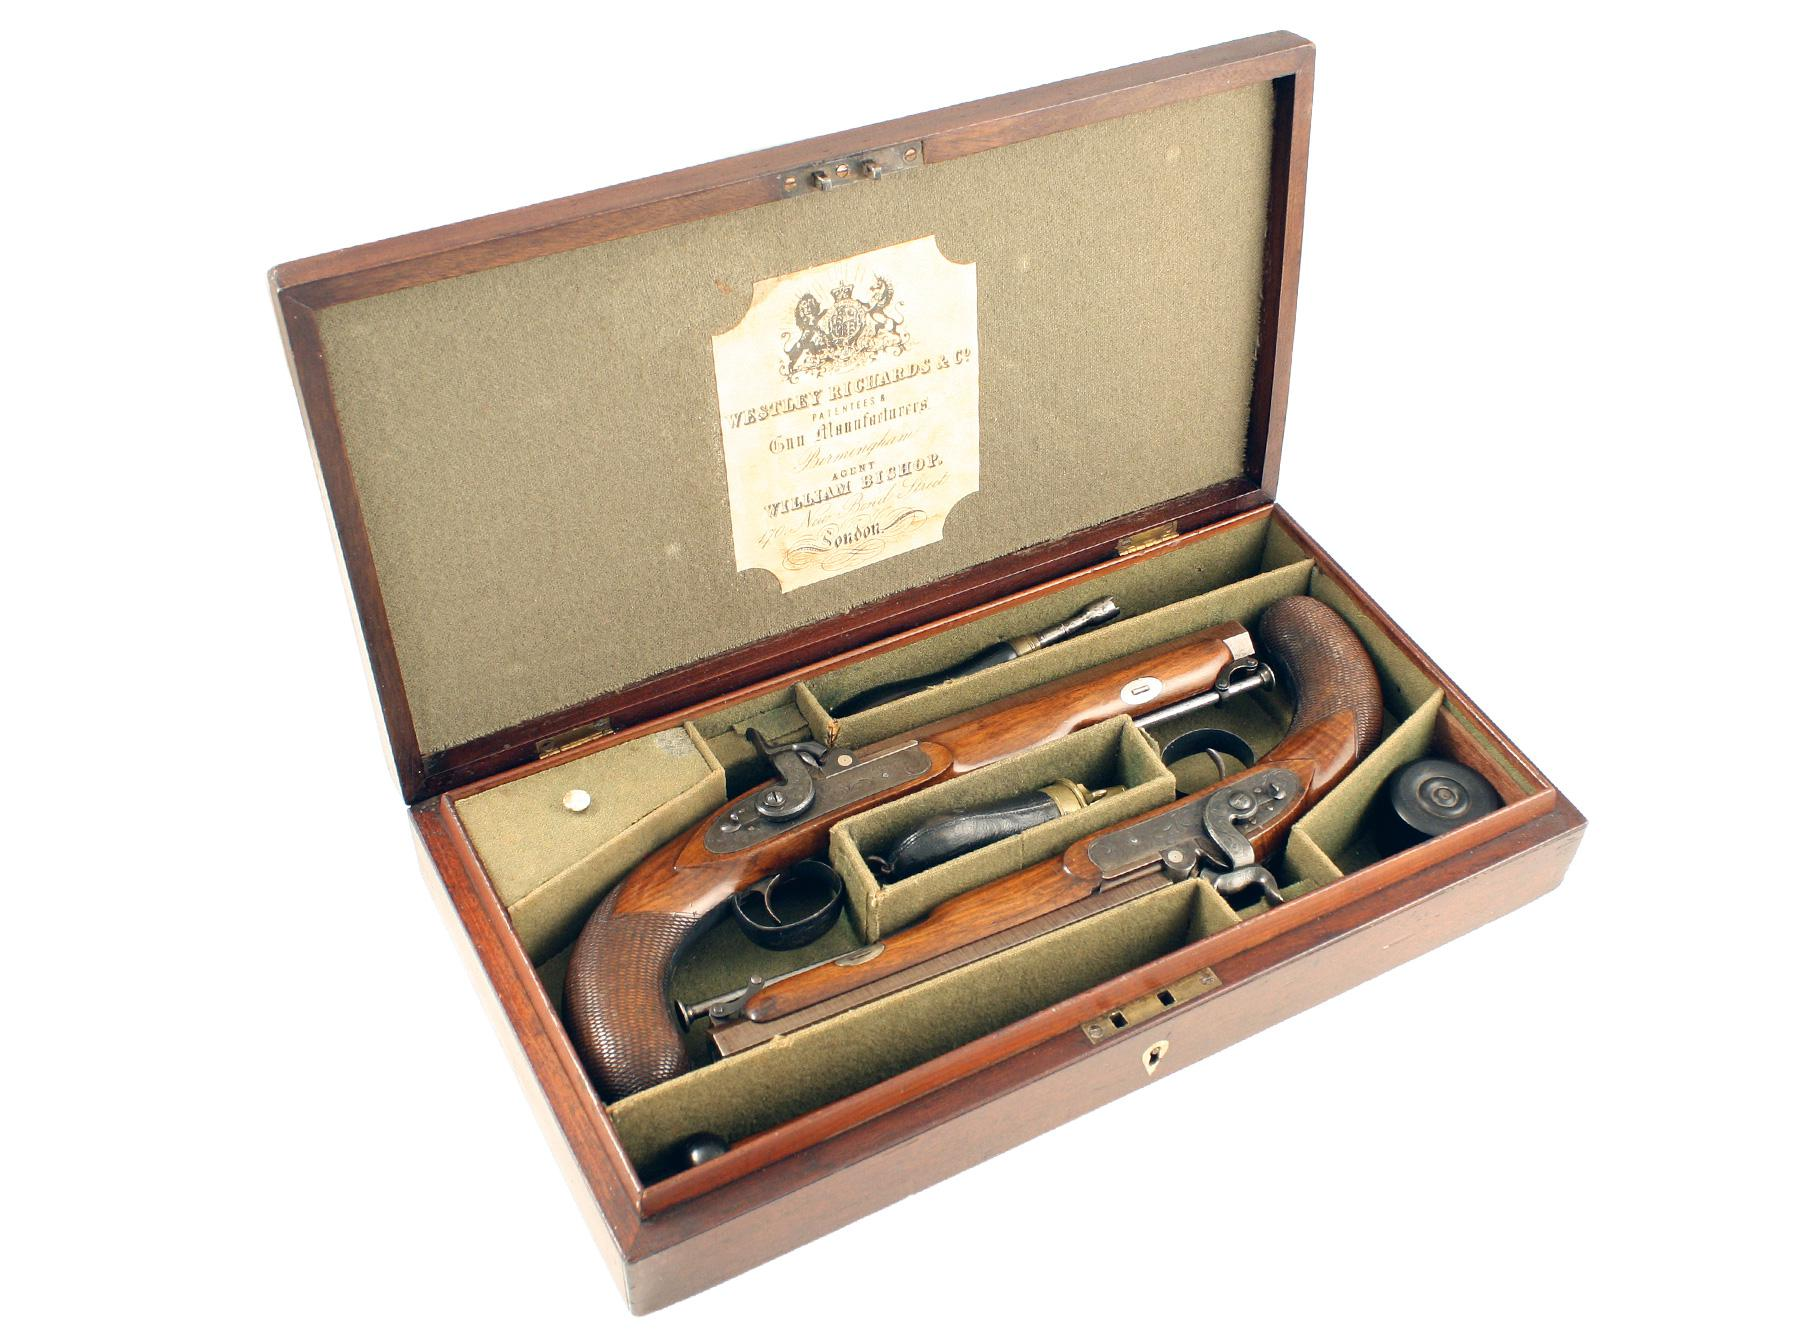 A Cased Pair of Westley Richards Officers Pistols.